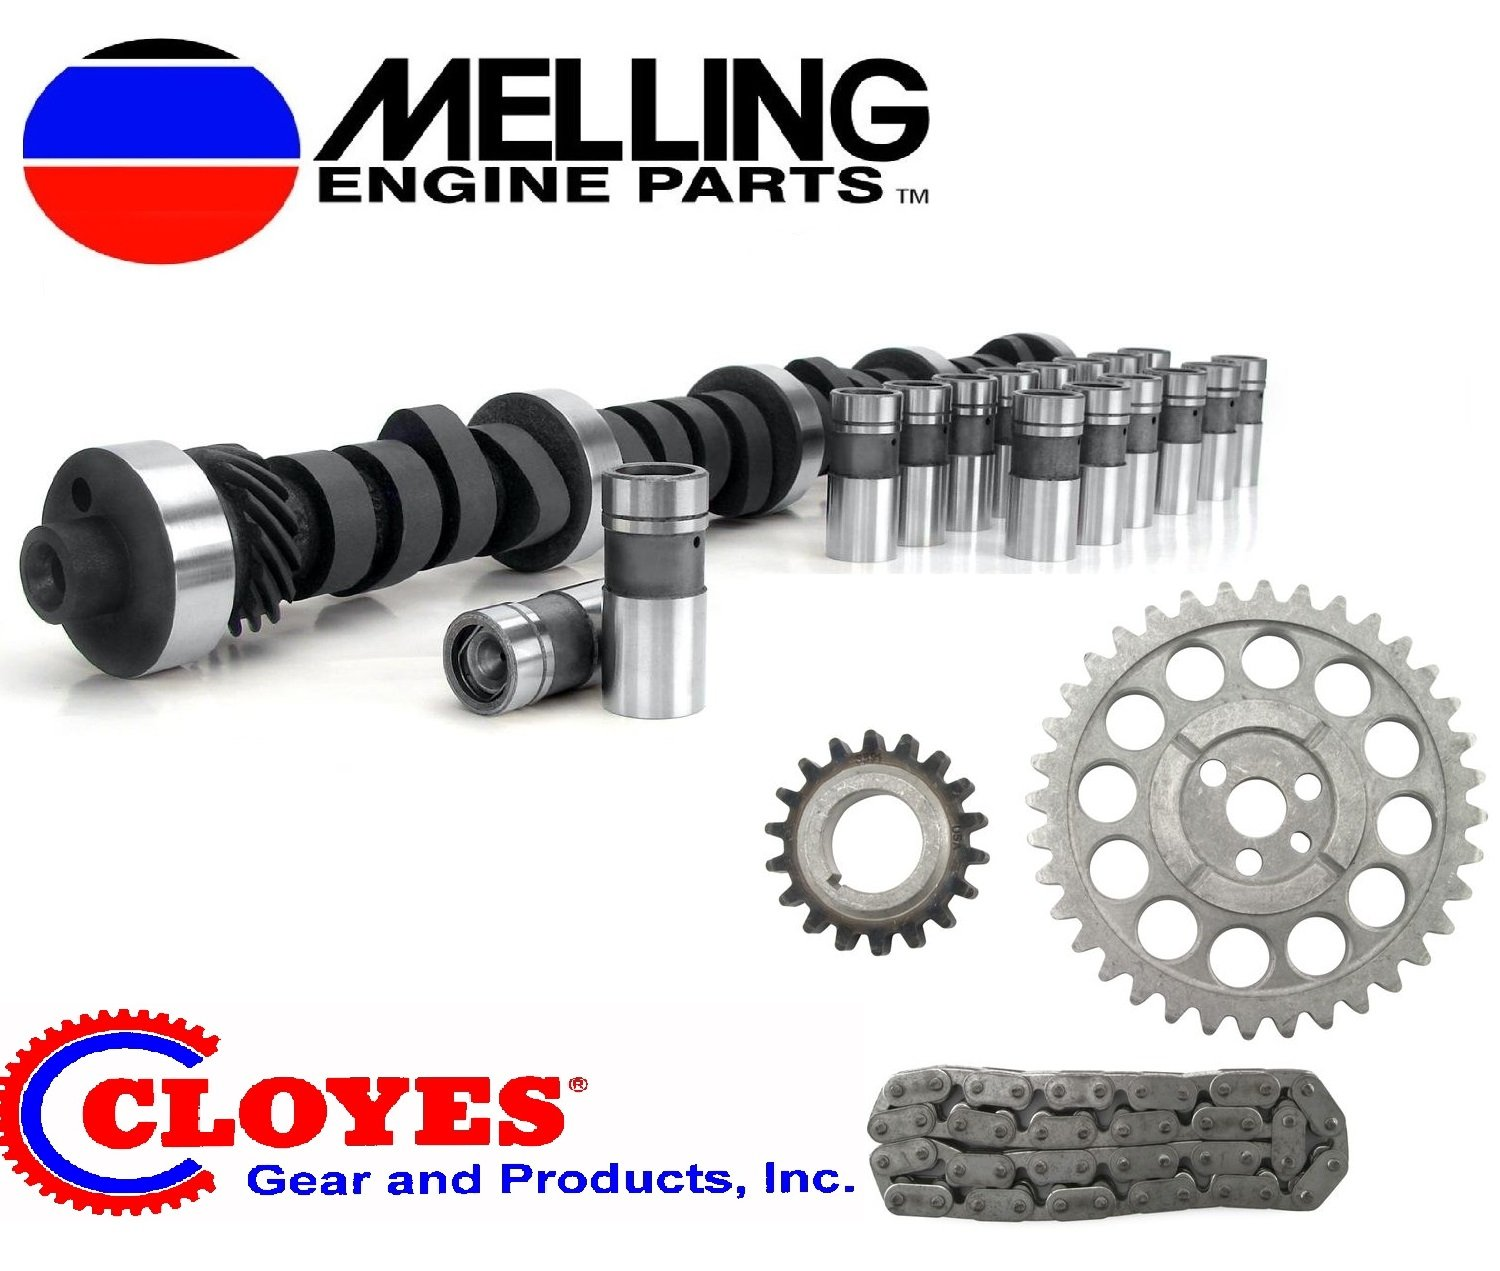 1969-1980 Chevy Chevrolet 350 STOCK Cam & Lifter Kit with timing. Camshaft lifters timing set (Stock Replacement) Elgin Cloyes